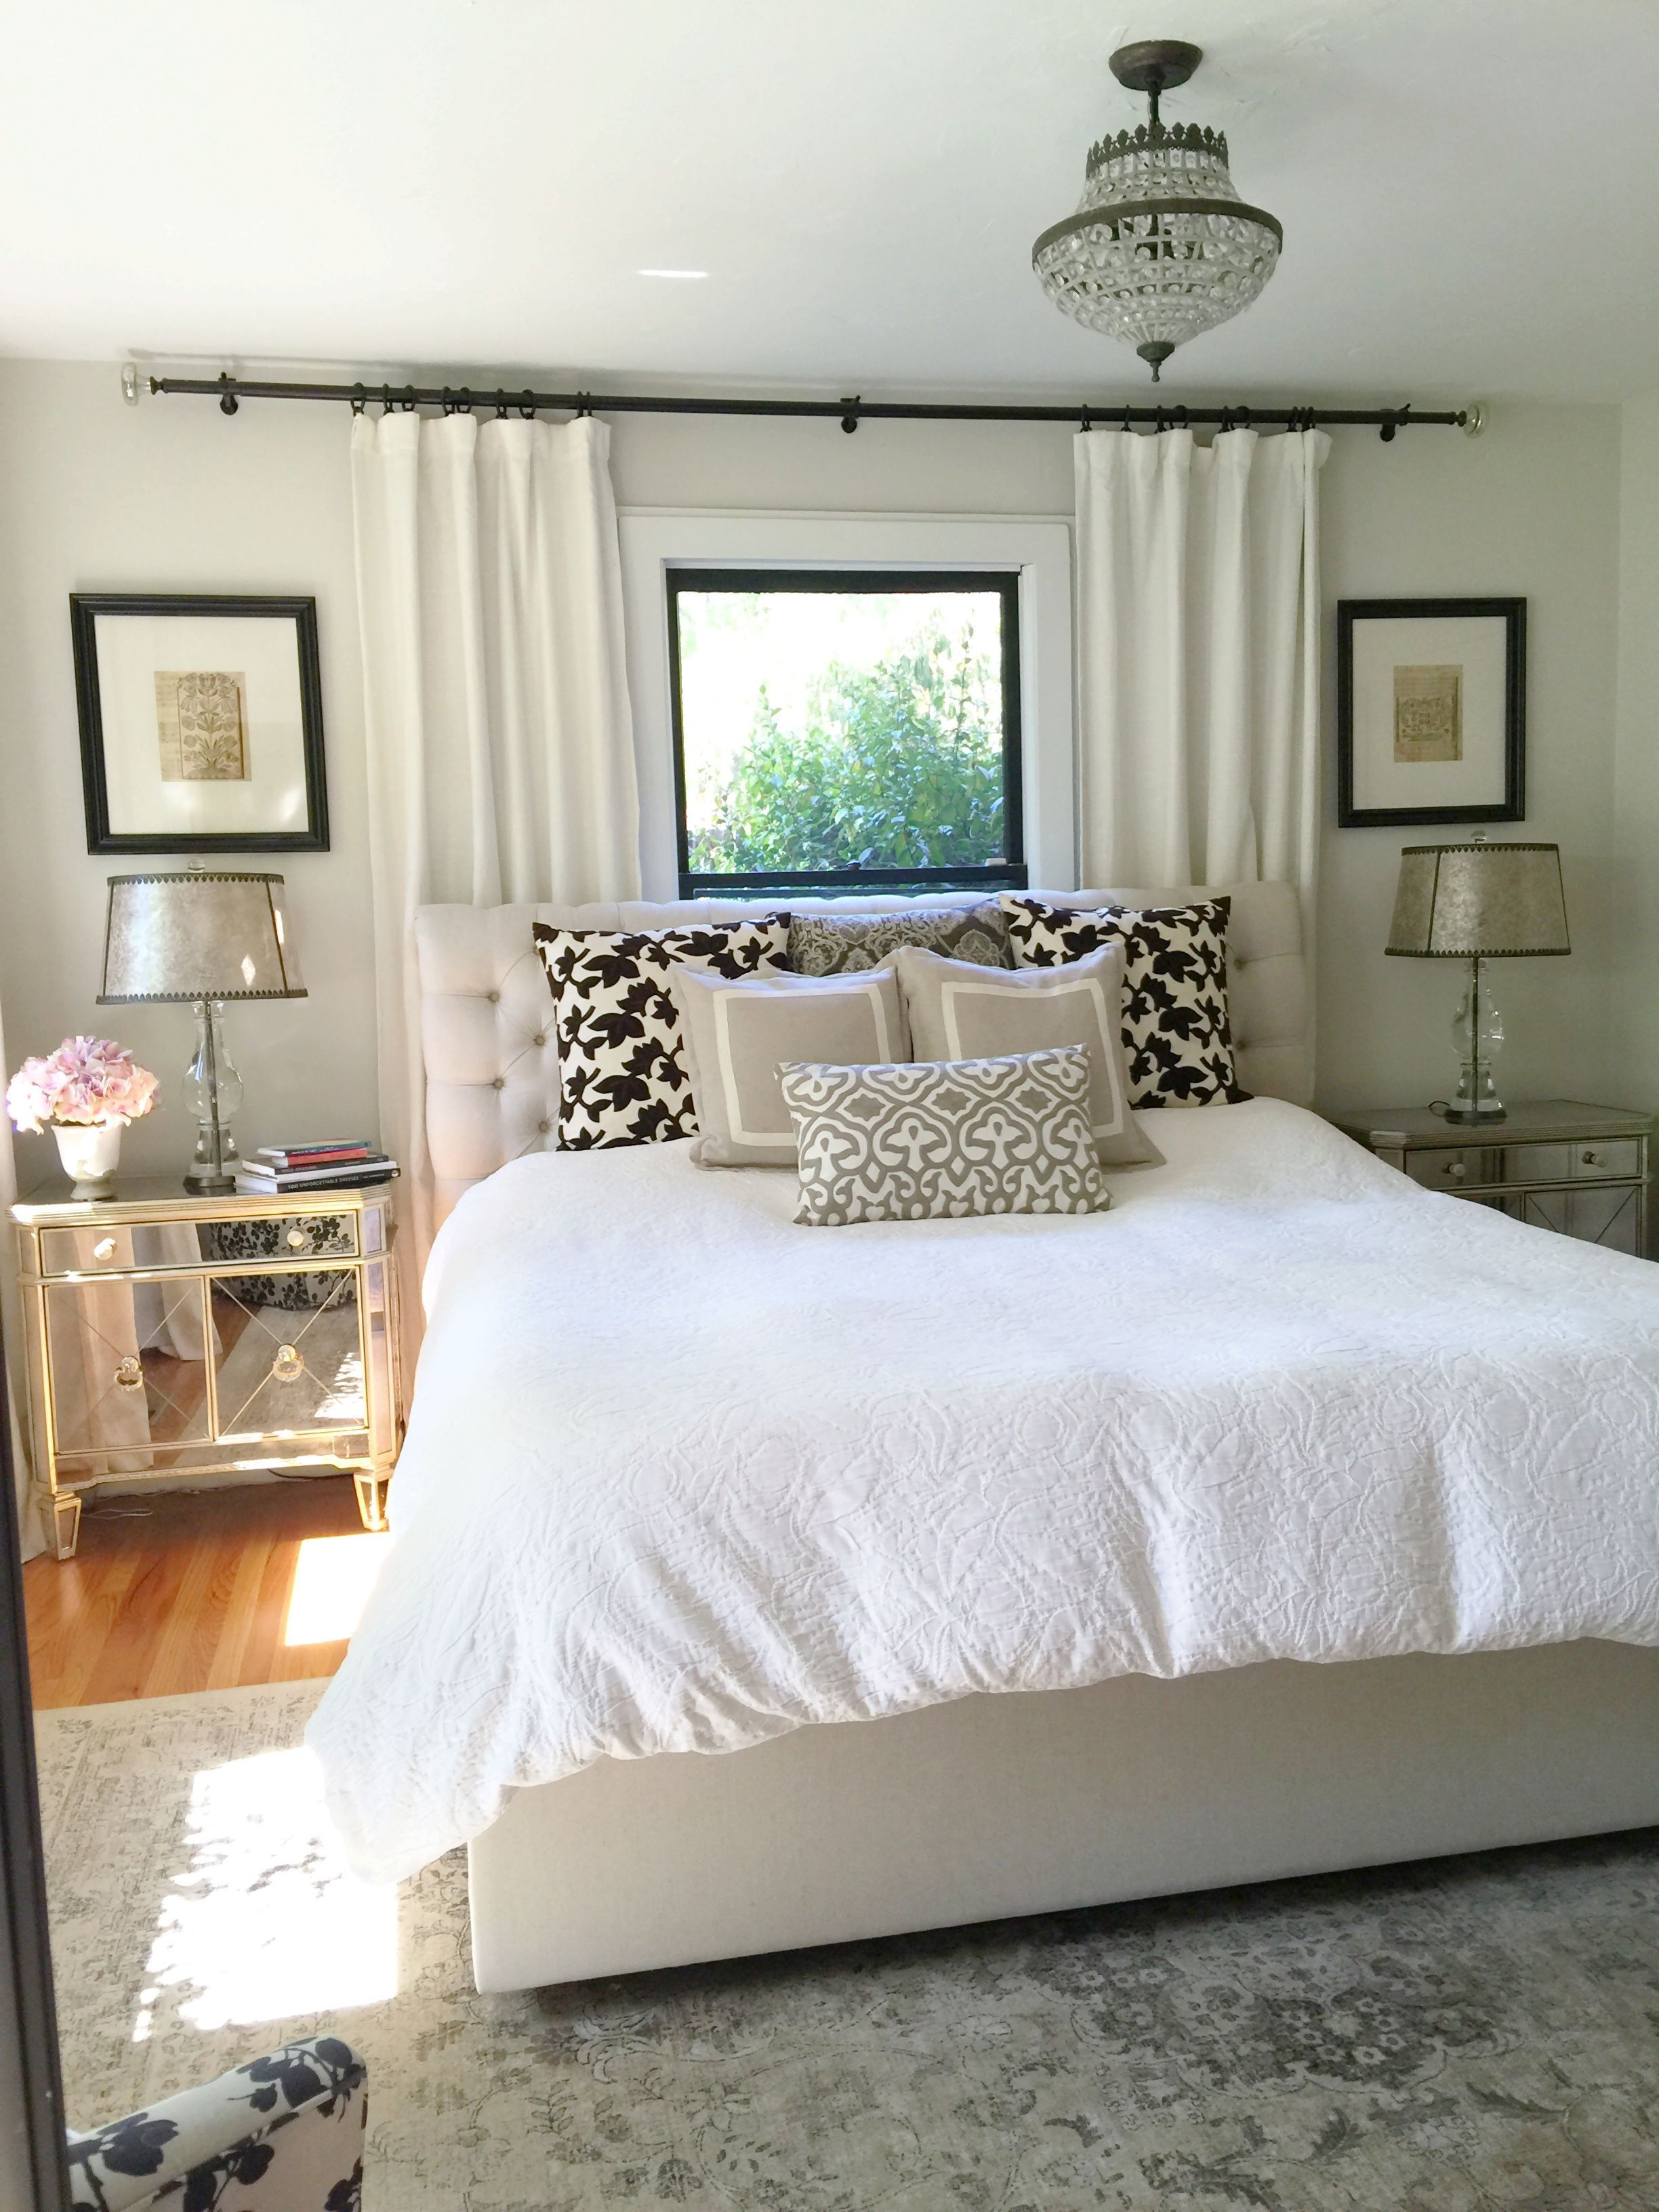 30 Small Master Bedroom Ideas with King Size Bed | Bedroom ...